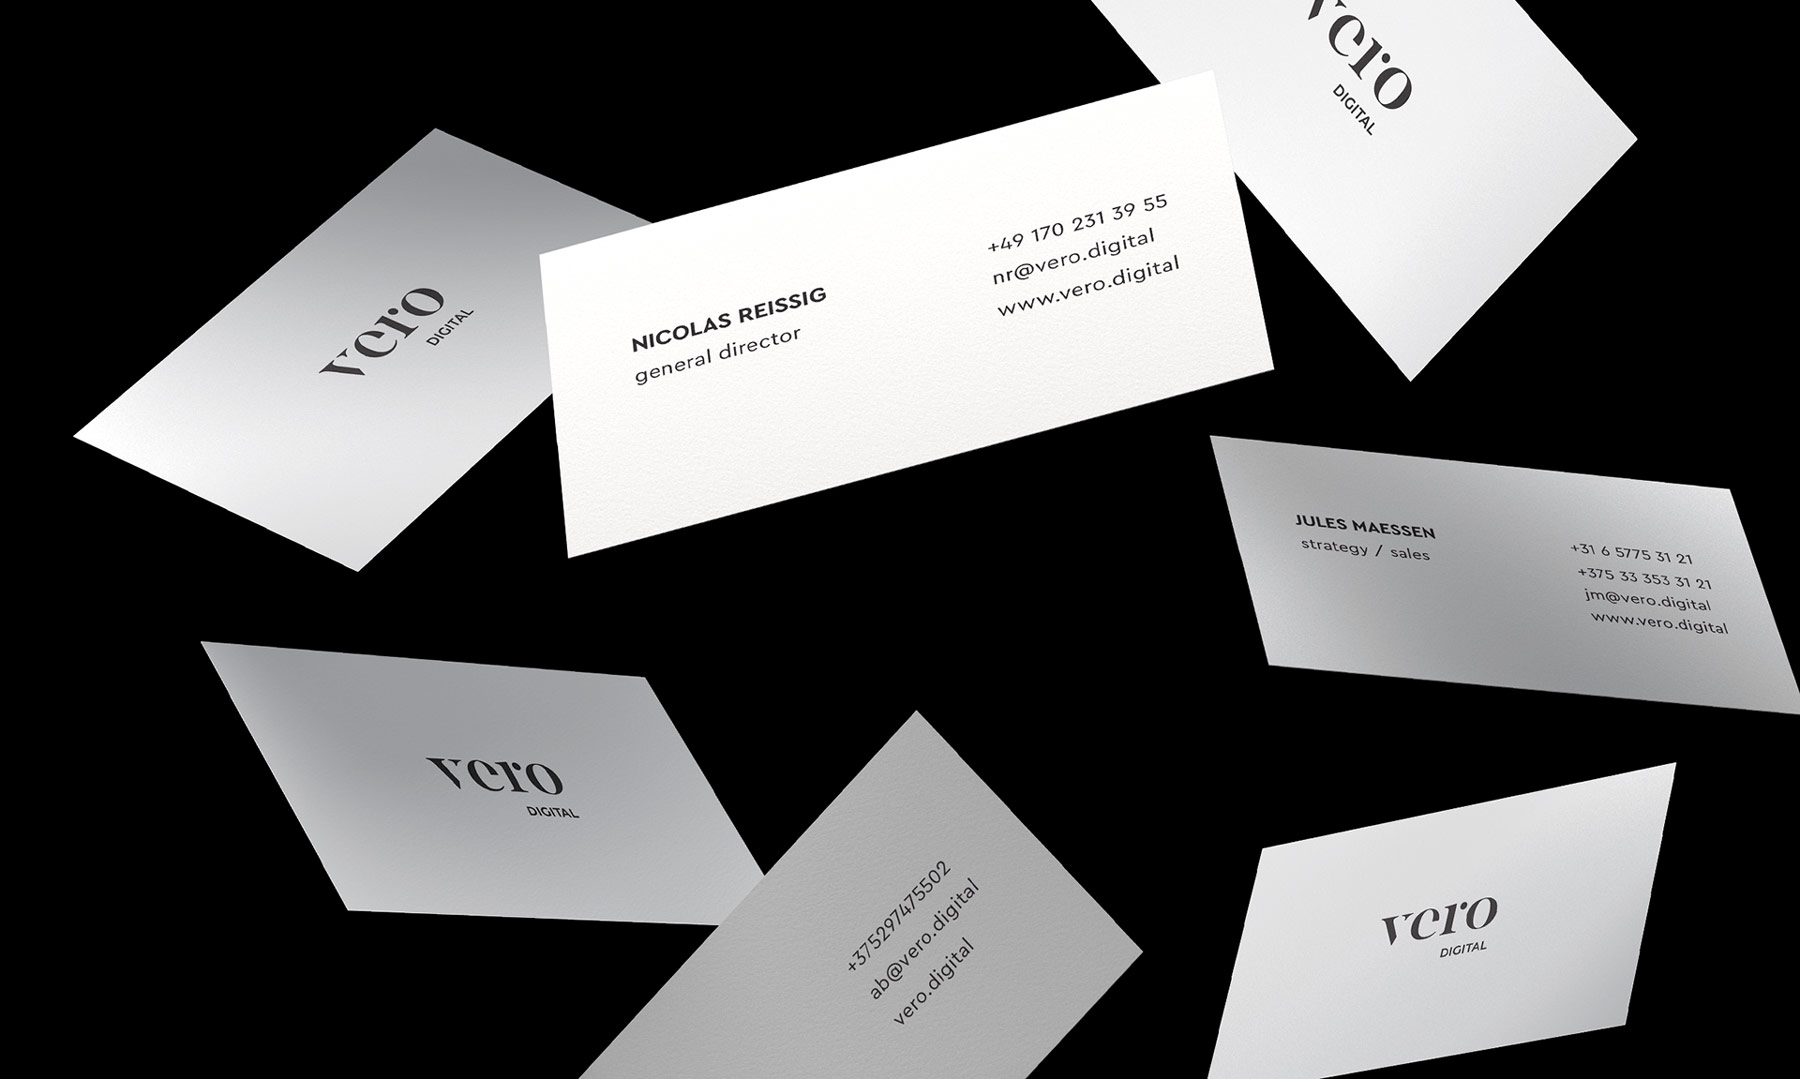 VERO identity & website